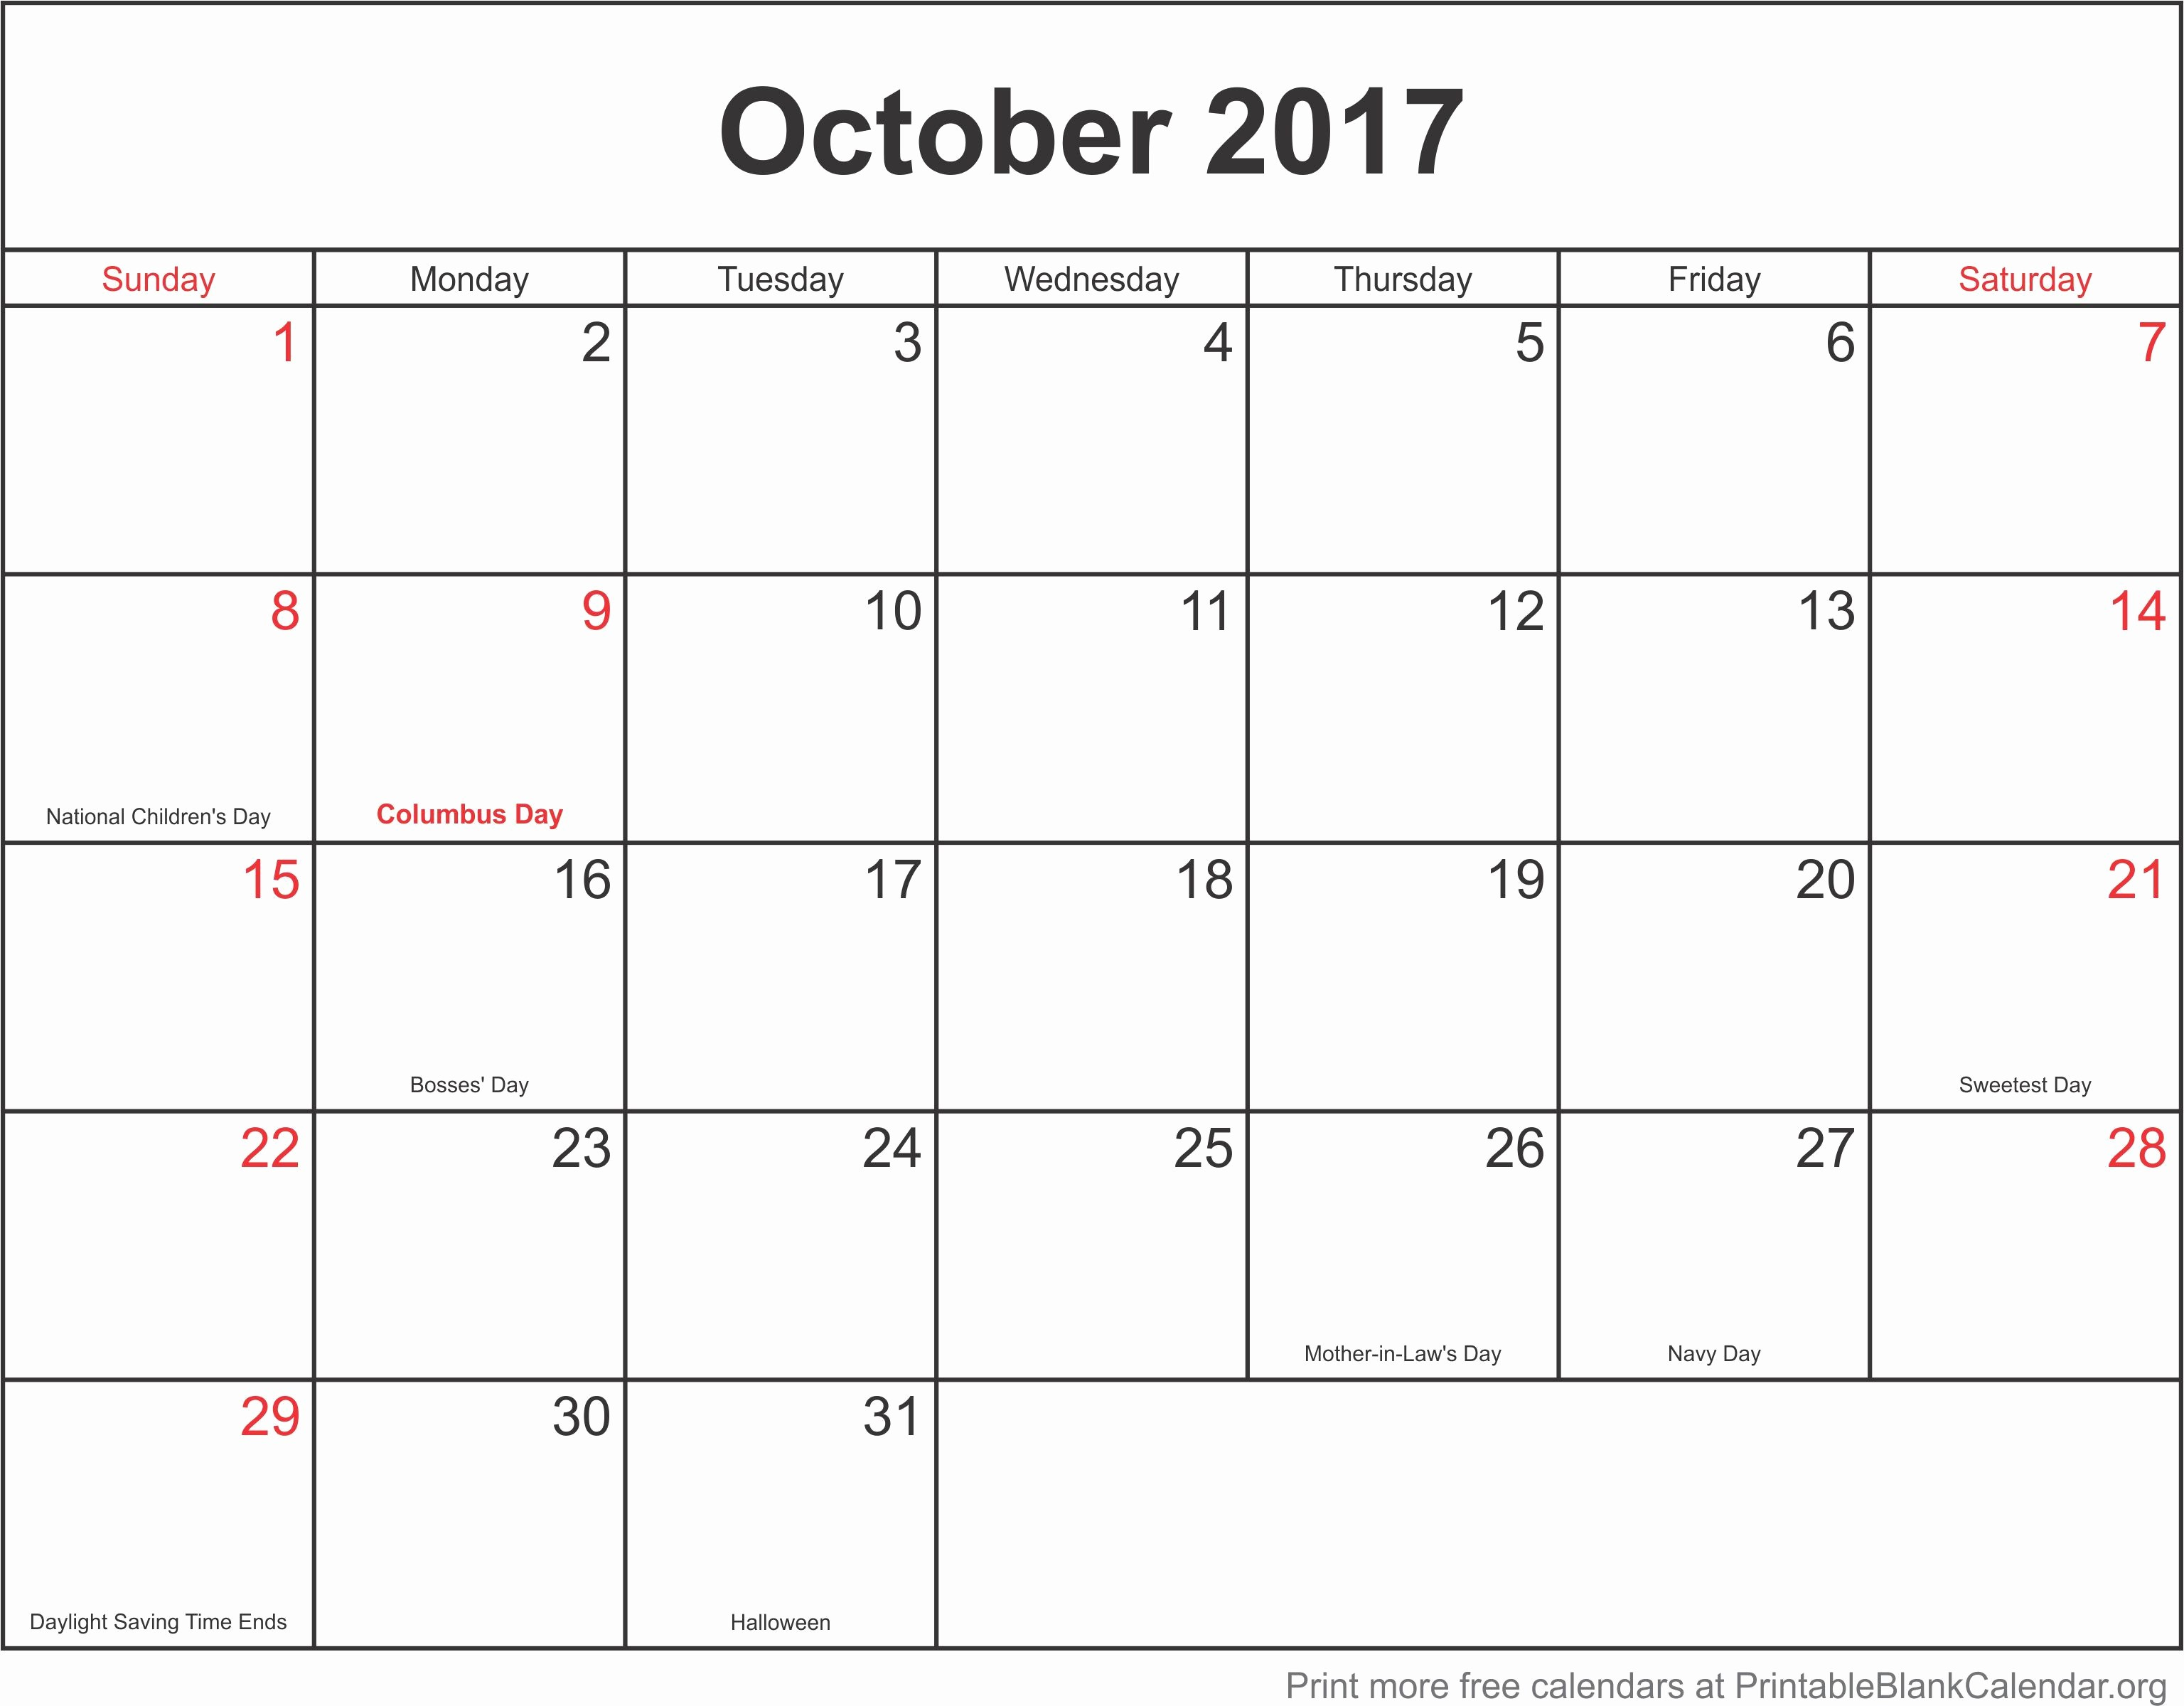 2017 Monthly Calendar Free Printable Best Of Printable Monthly Calendar 2017 October